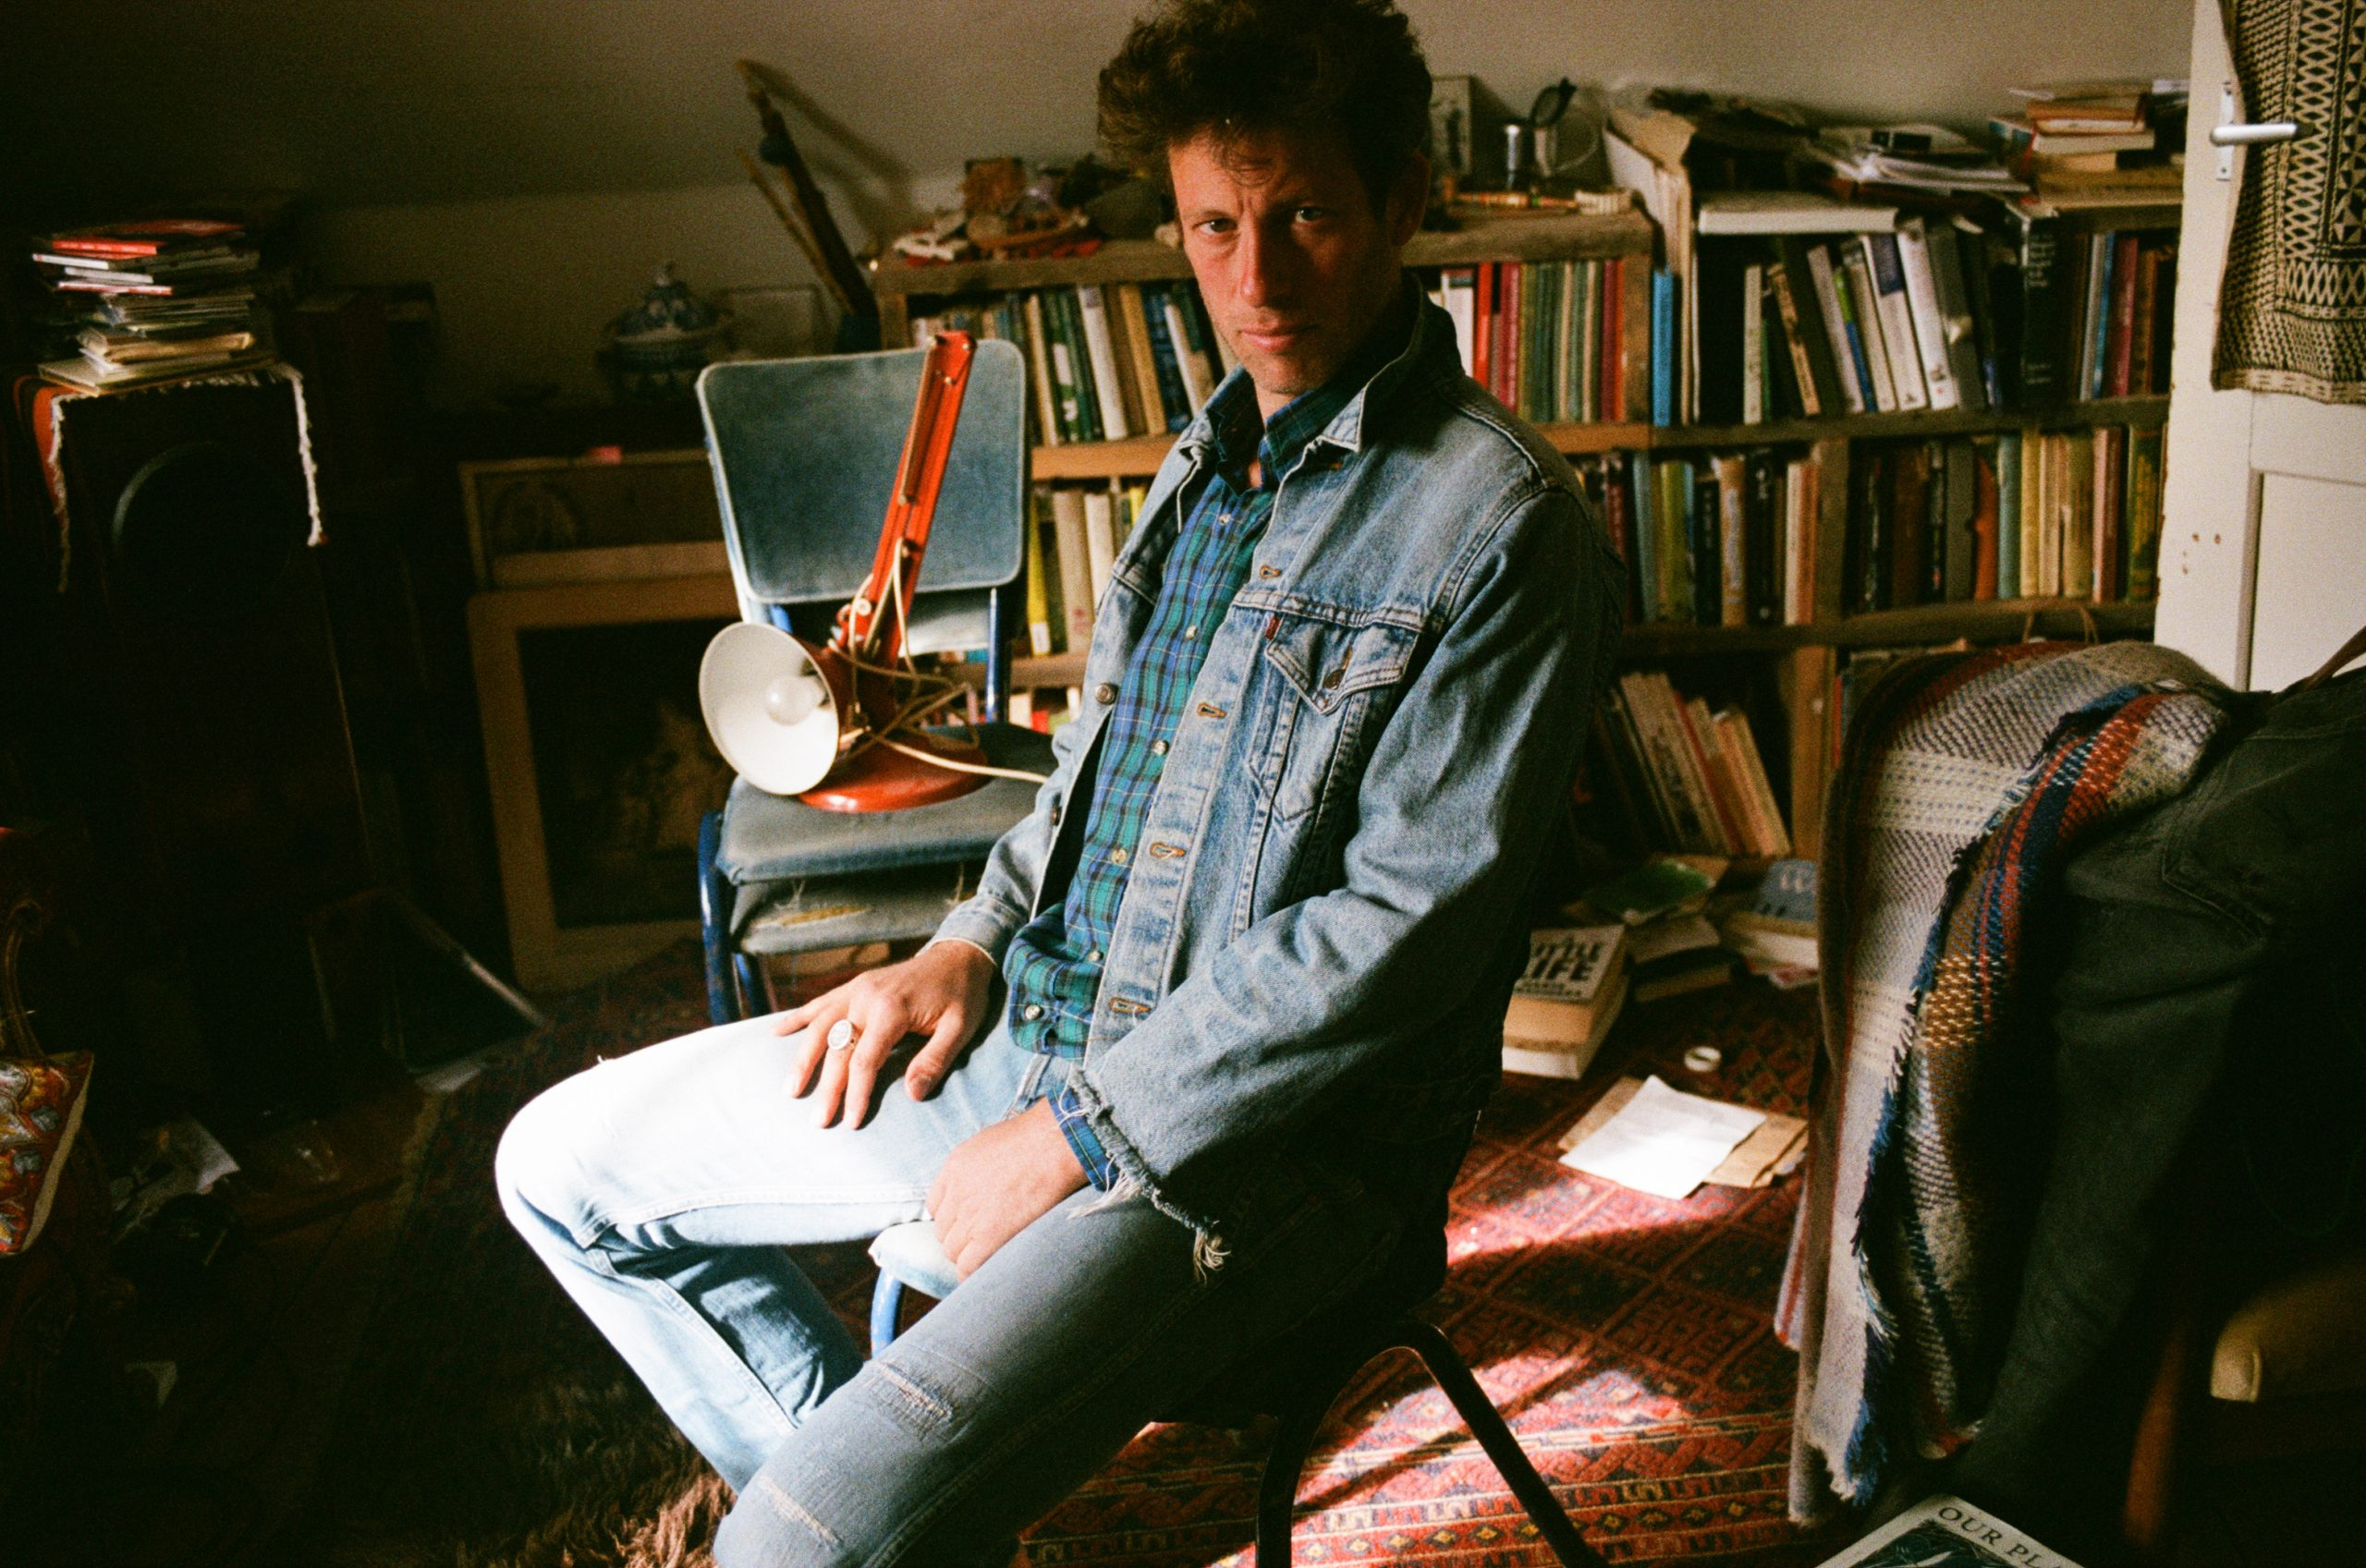 Sam Lee, wearing denim, sits in a cluttered room in front of a bookshelf